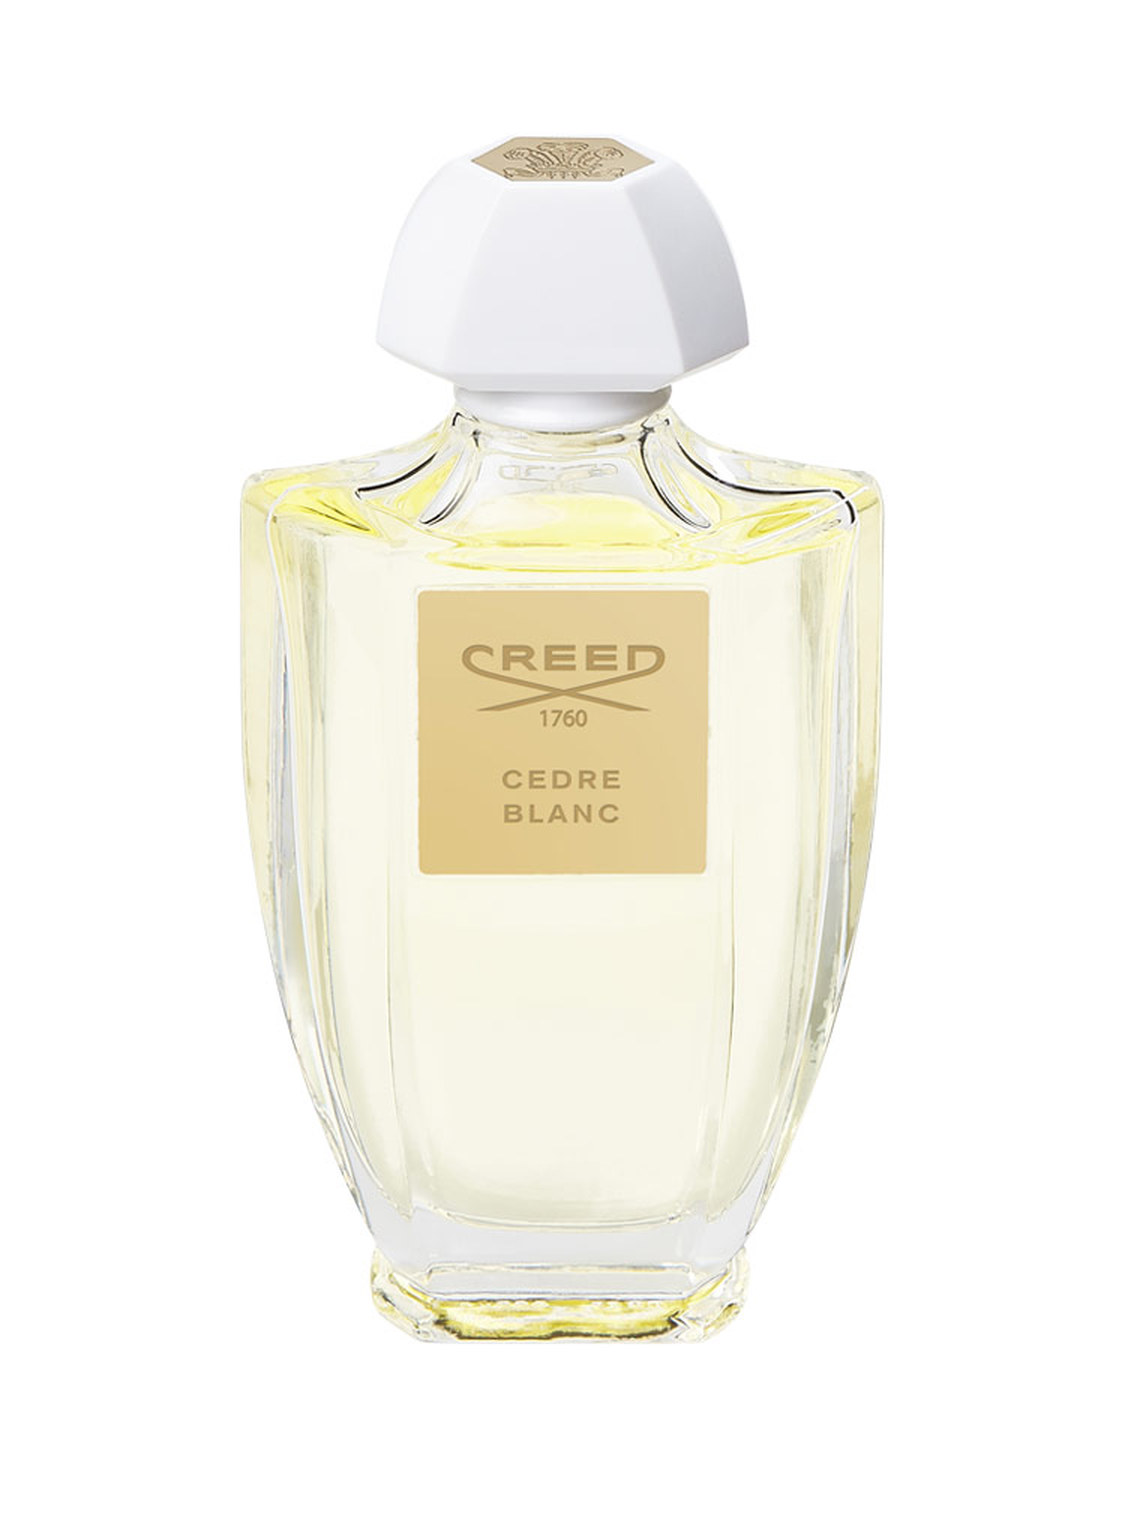 CREED CÈDRE BLANC